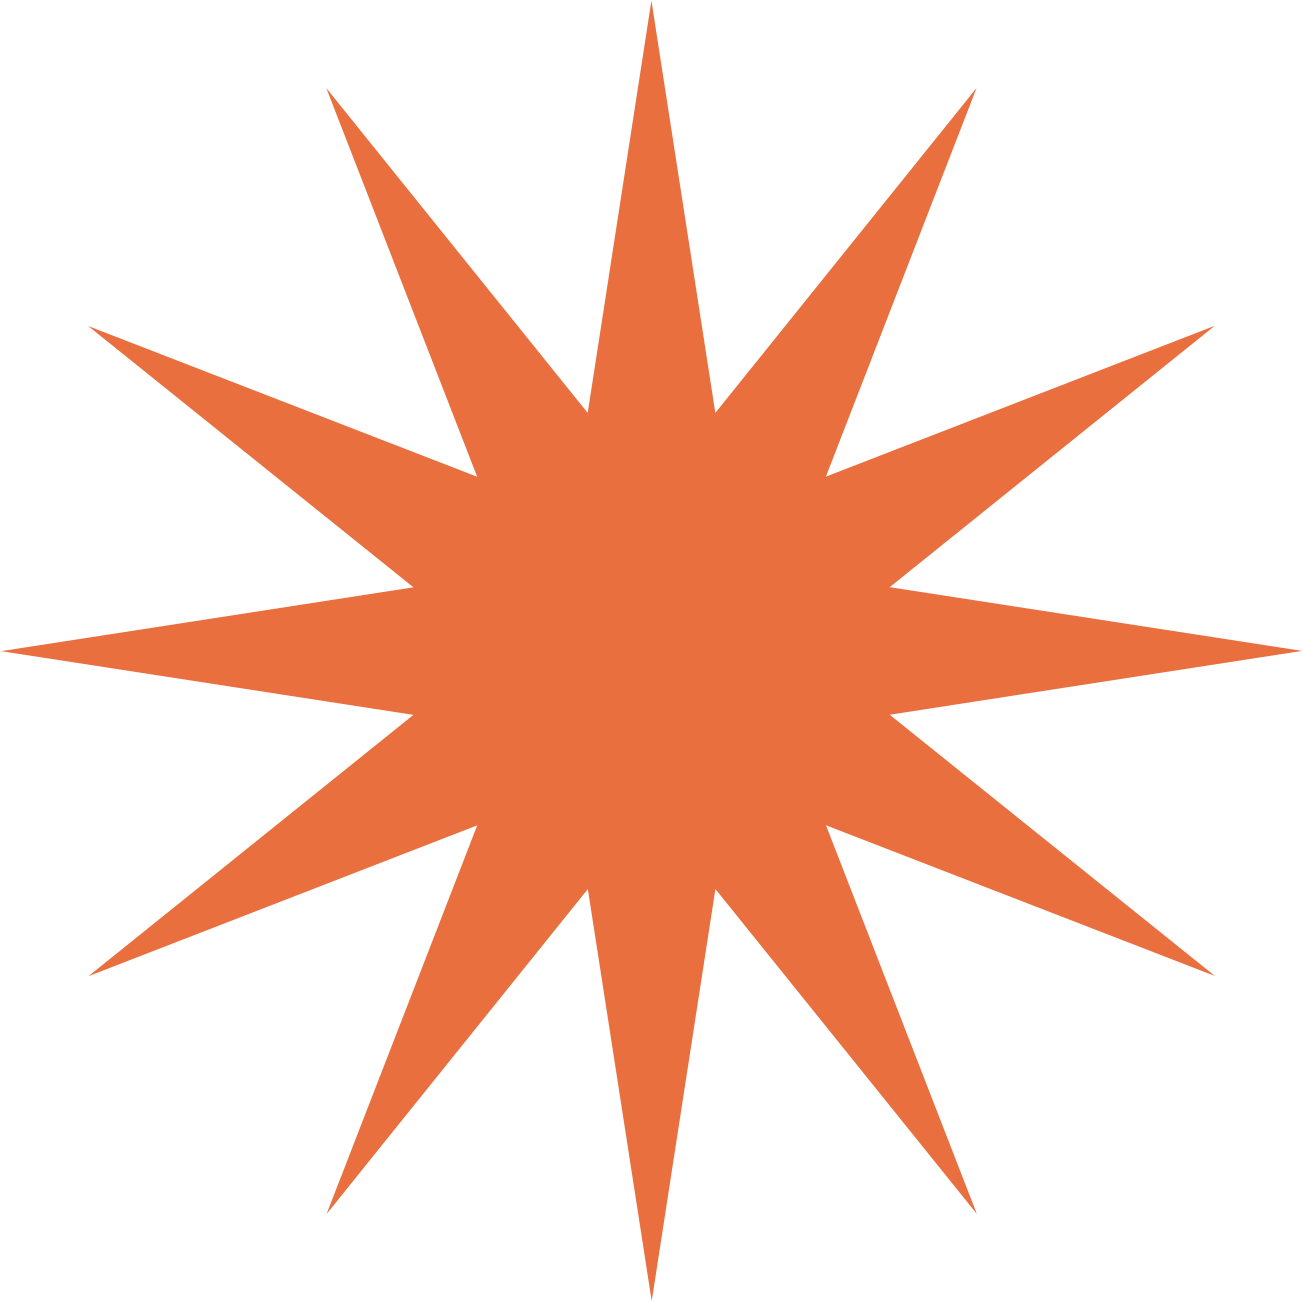 Spinning Orange Star